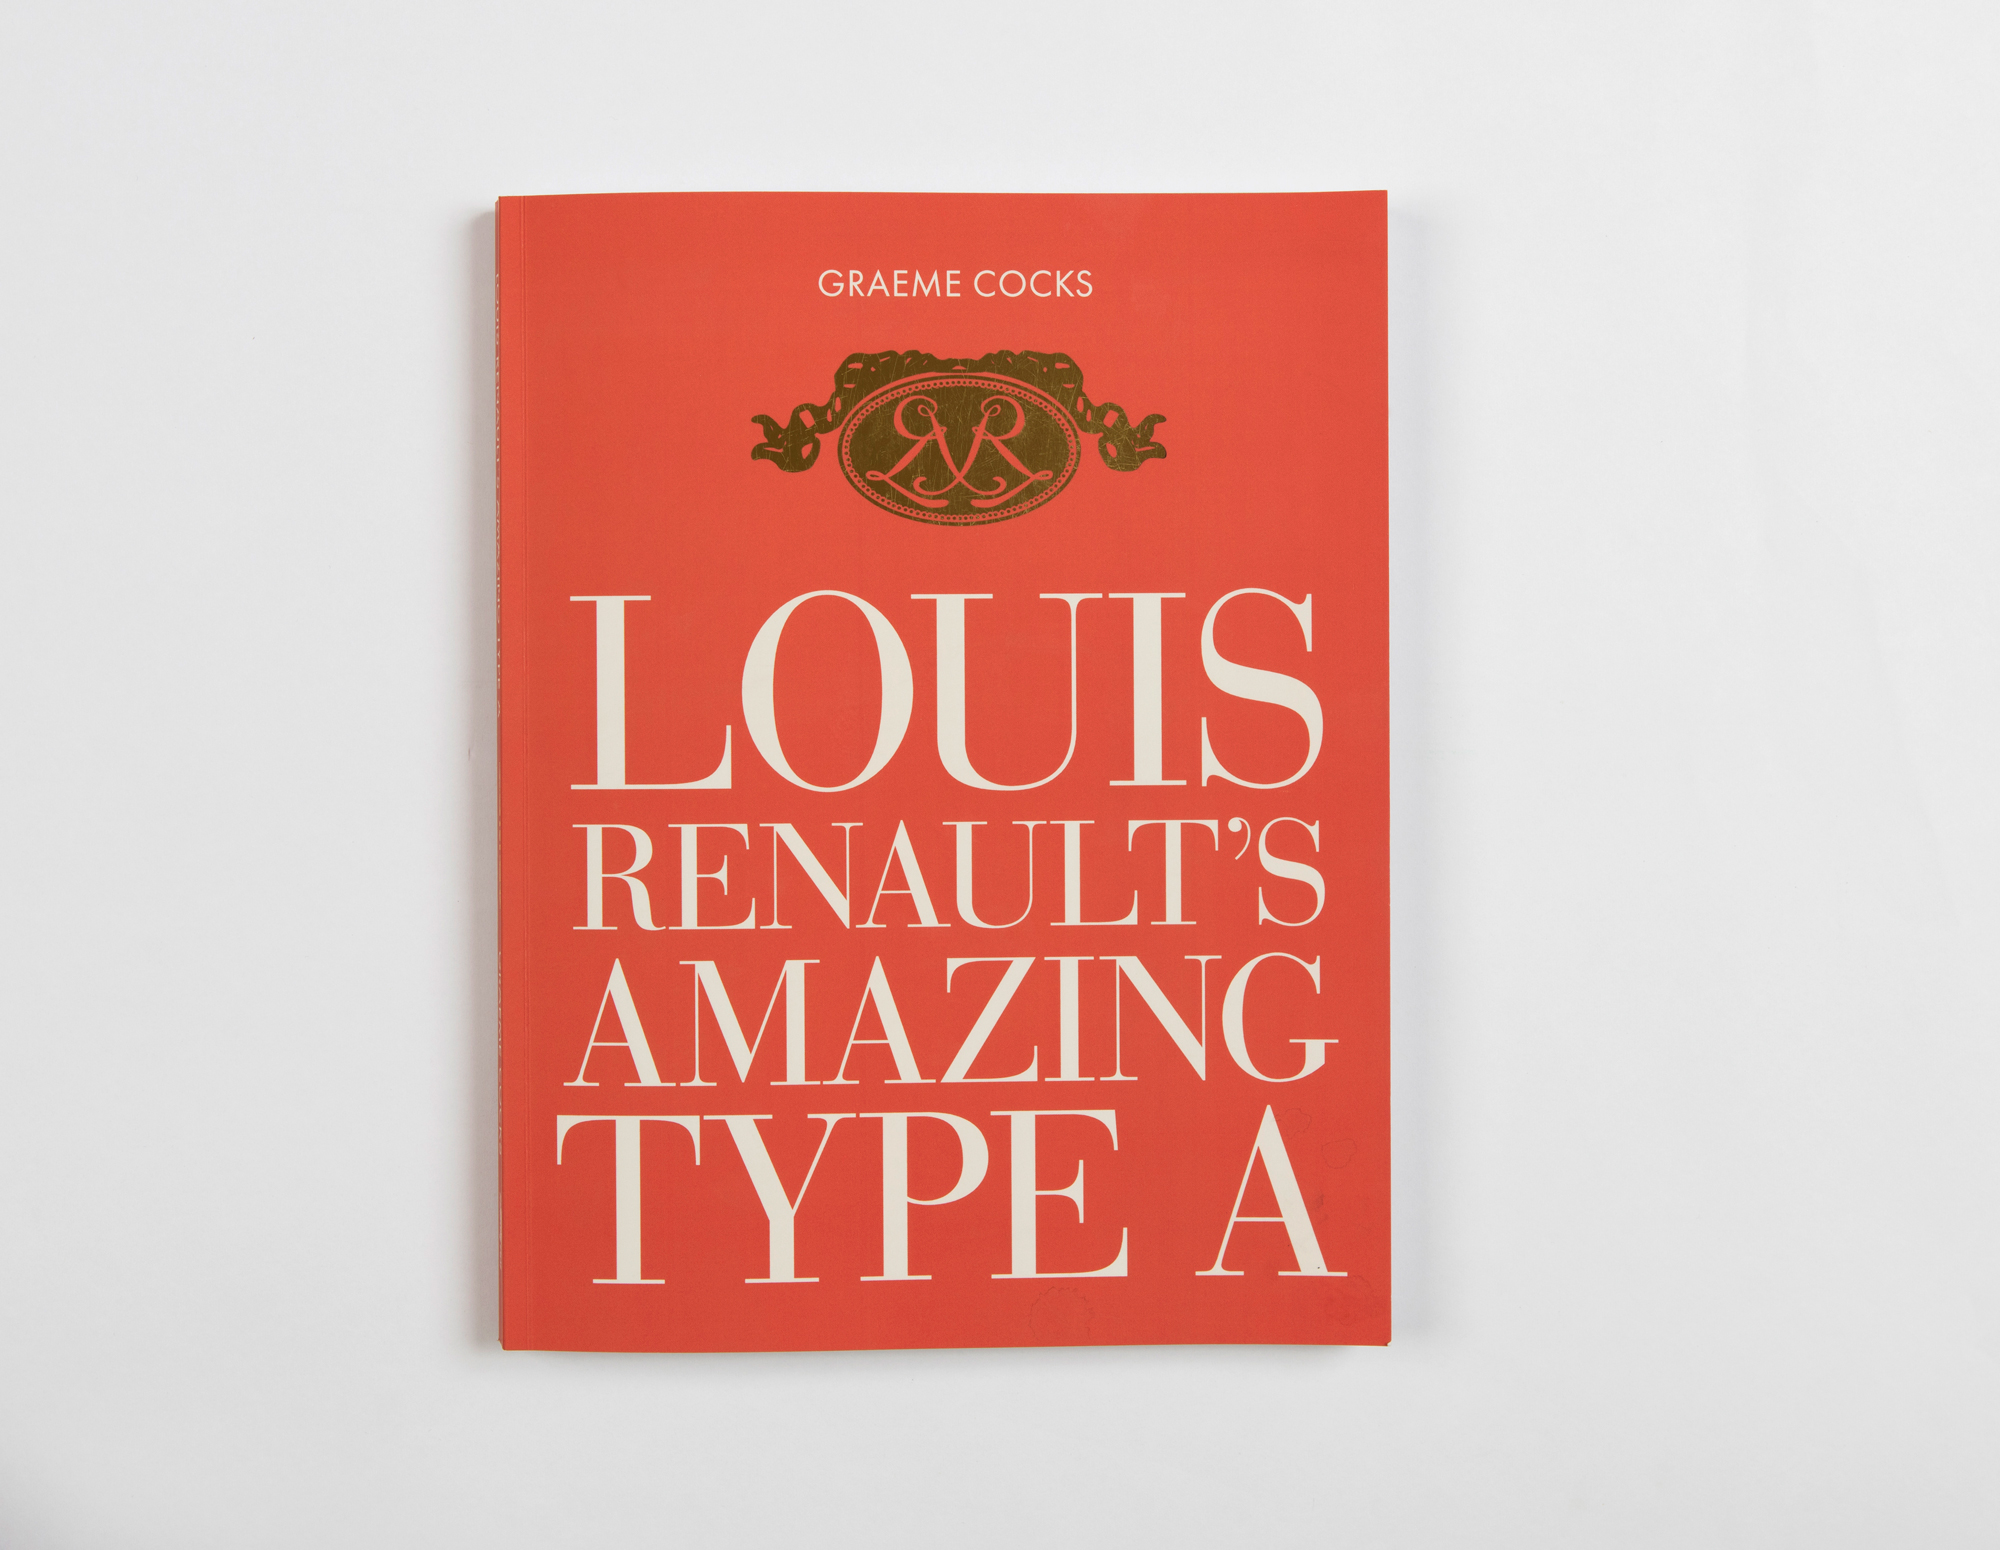 An historic typeface, Bodoni, synonymous with style and quality, is used for this book cover.